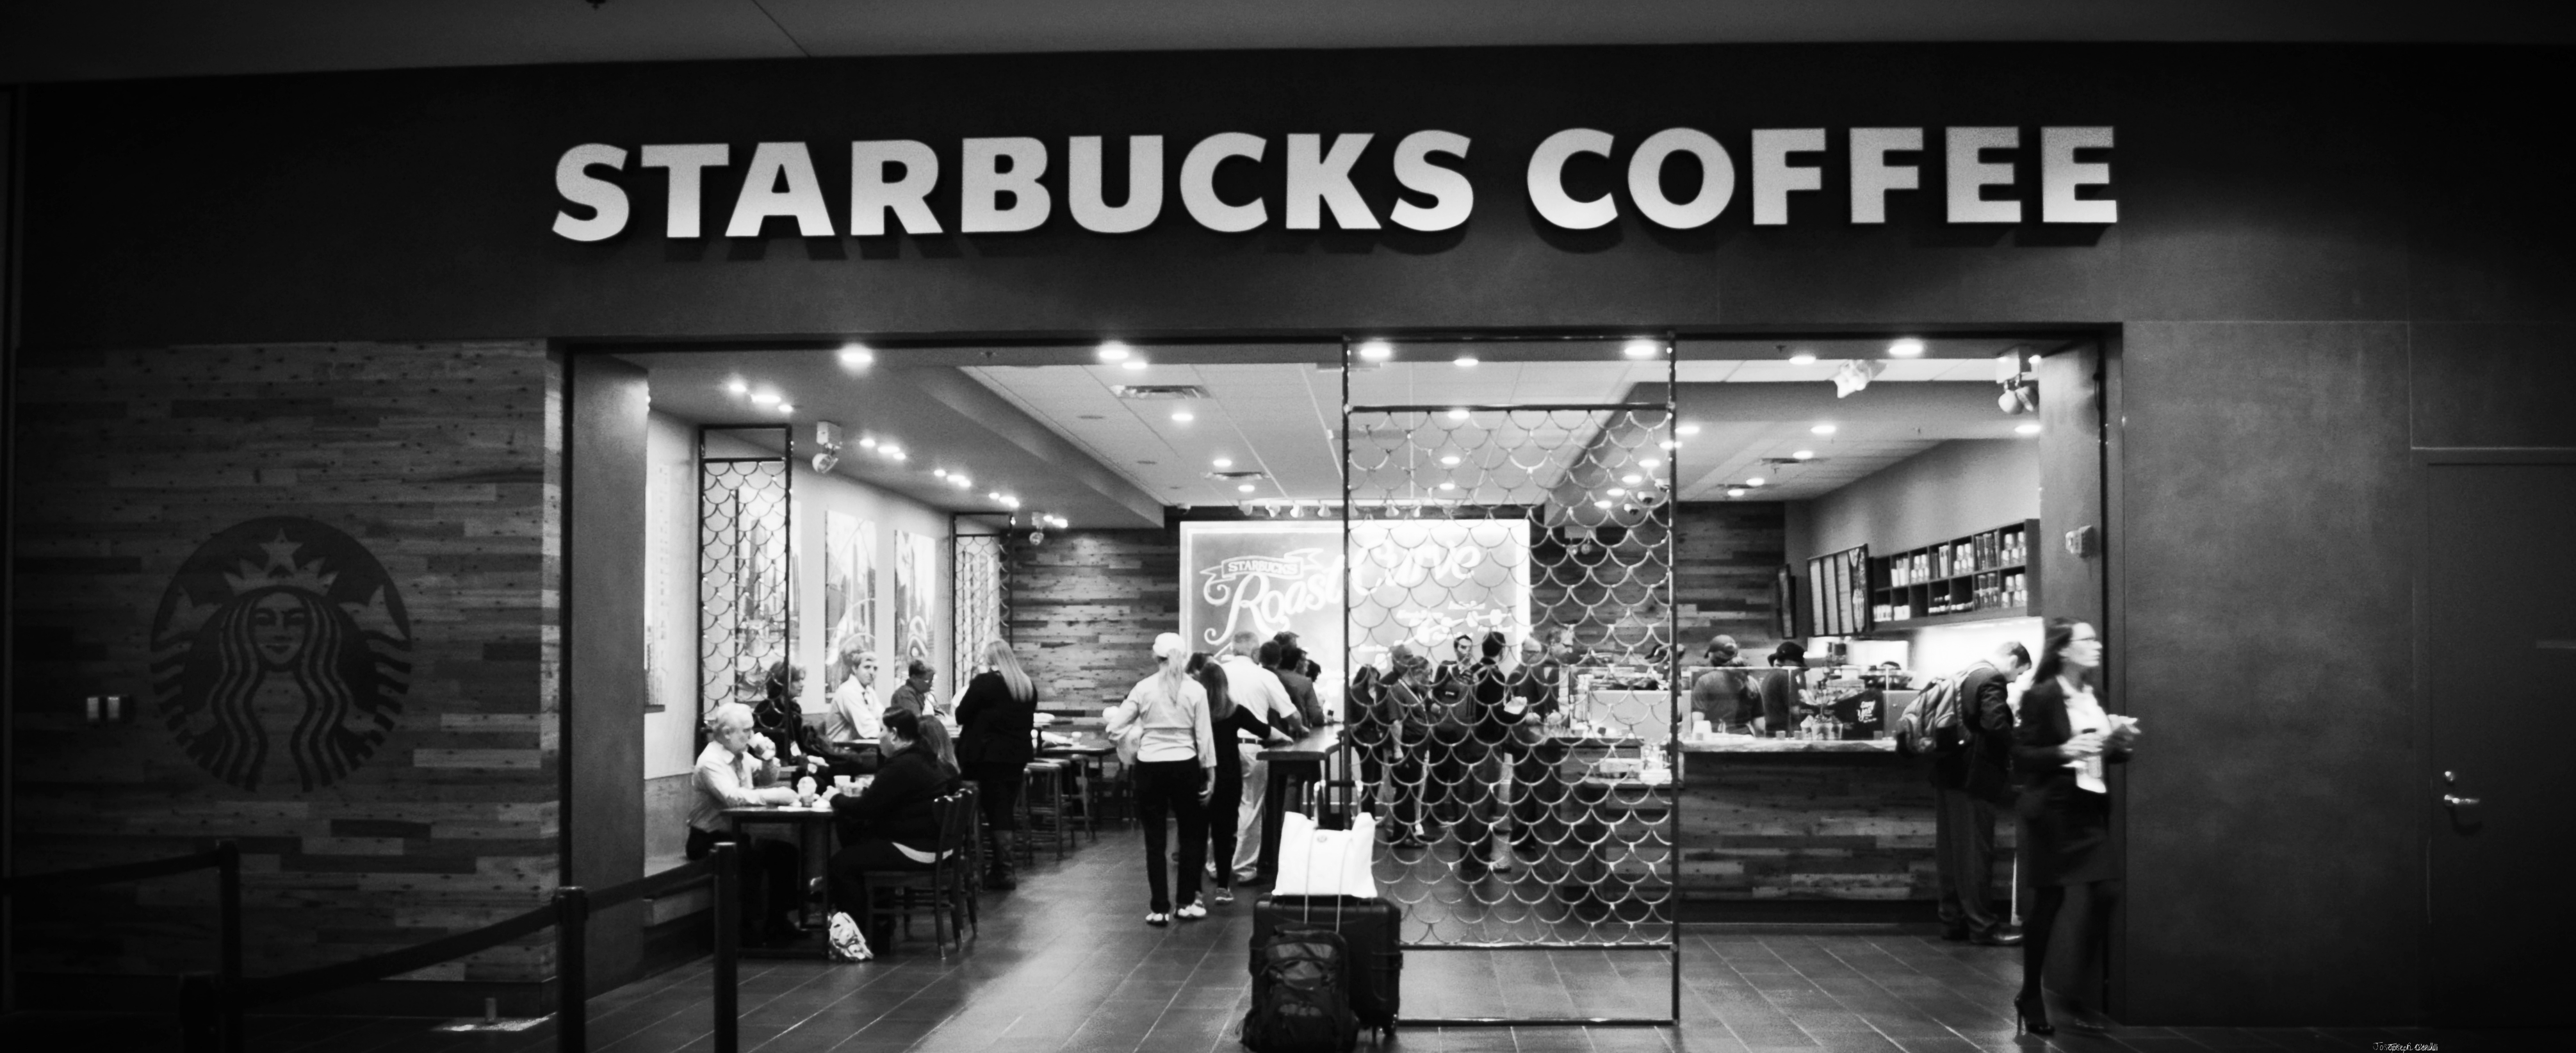 Starbucks will close 8,000 of its stores to implement racial bias training for its employees to improve customer experience. (credit: Courtesy of Joseph Cerulli via Flickr Wikimedia)